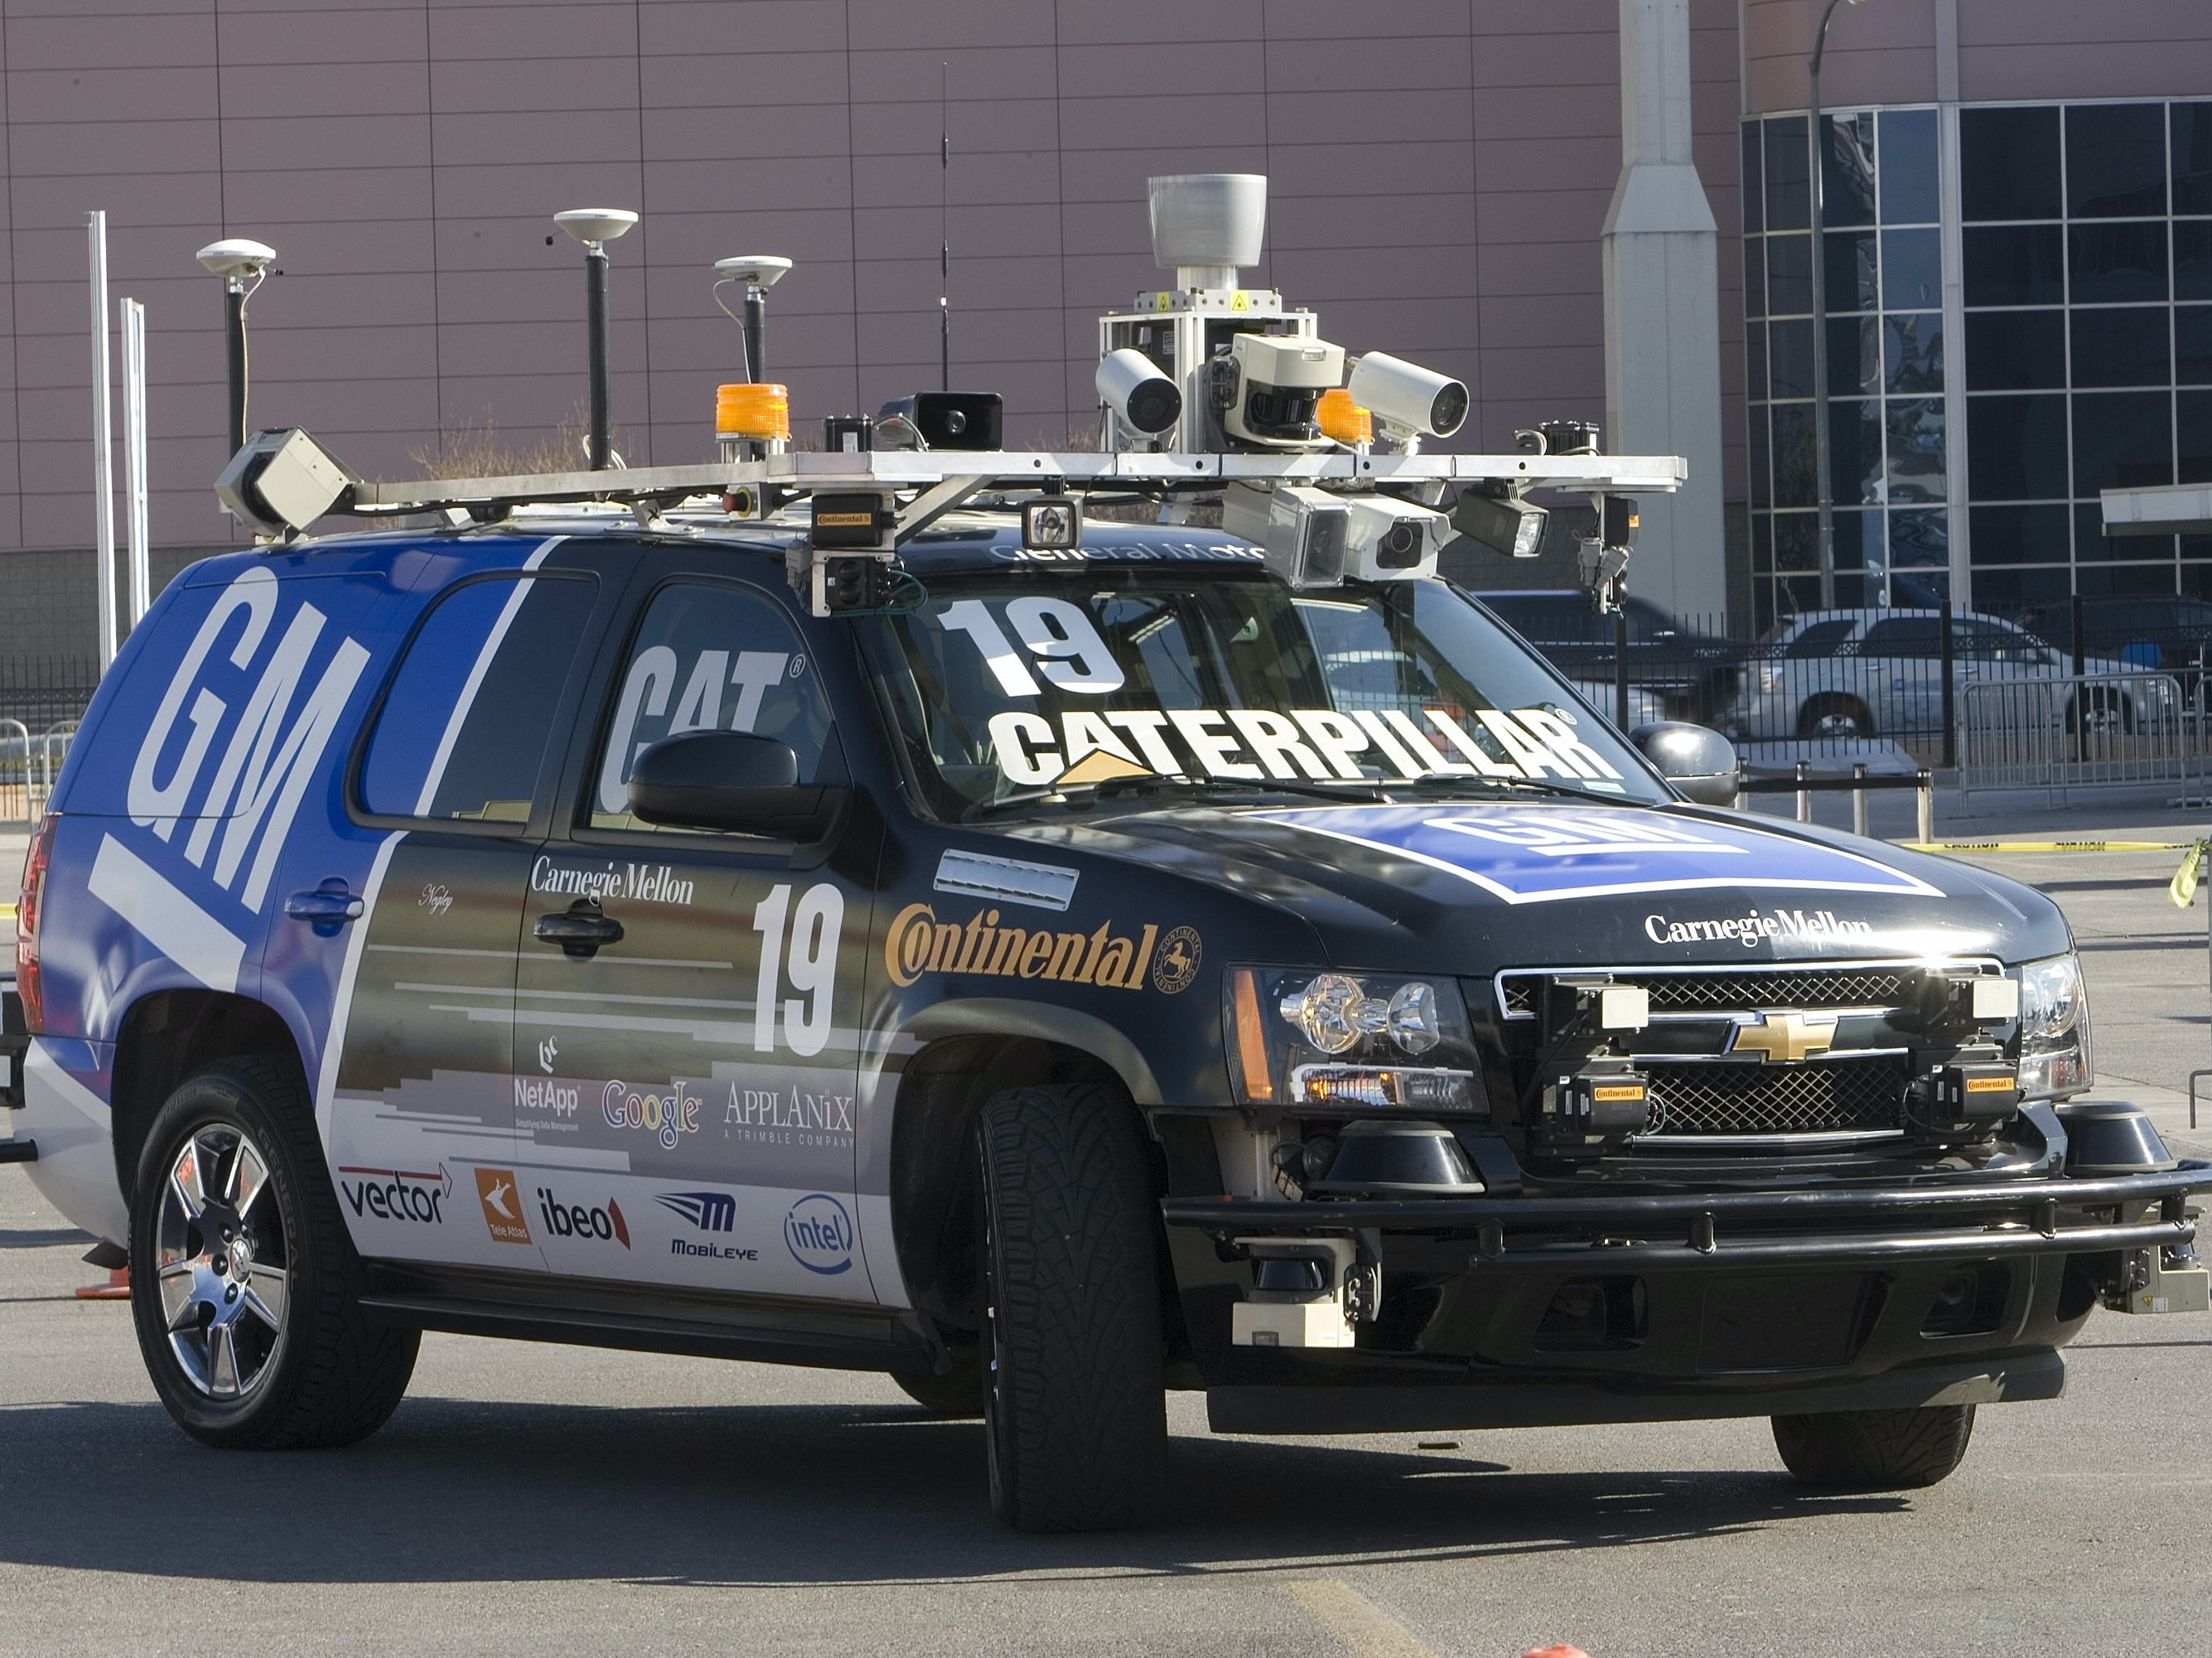 LAS VEGAS, NV - JANUARY 9:  'The Boss'  a driver-less automobile is seen at the 2008 International Consumer Electronics Show at the Las Vegas Convention Center January 9, 2008 in Las Vegas, Nevada. Using a combination of LIDAR, radar, vision and mapping GPS systems to see the world around it, the unmanned Chevrolet Tahoe used only electronics to successfully drive itself through a 60-mile urban course in November 2007 to win the prestigious U.S. Defense Department sponsored competition, DARPA Urban Challenge. The prototype vehicle recognizes road geometry and perceives other traffic and obstacles on the road.  CES, the world's largest annual consumer technology tradeshow, runs through tomorrow and features 2,700 exhibitors showing off their latest products and services to more than 140,000 attendees.  (Photo by David Paul Morris/Getty Images)